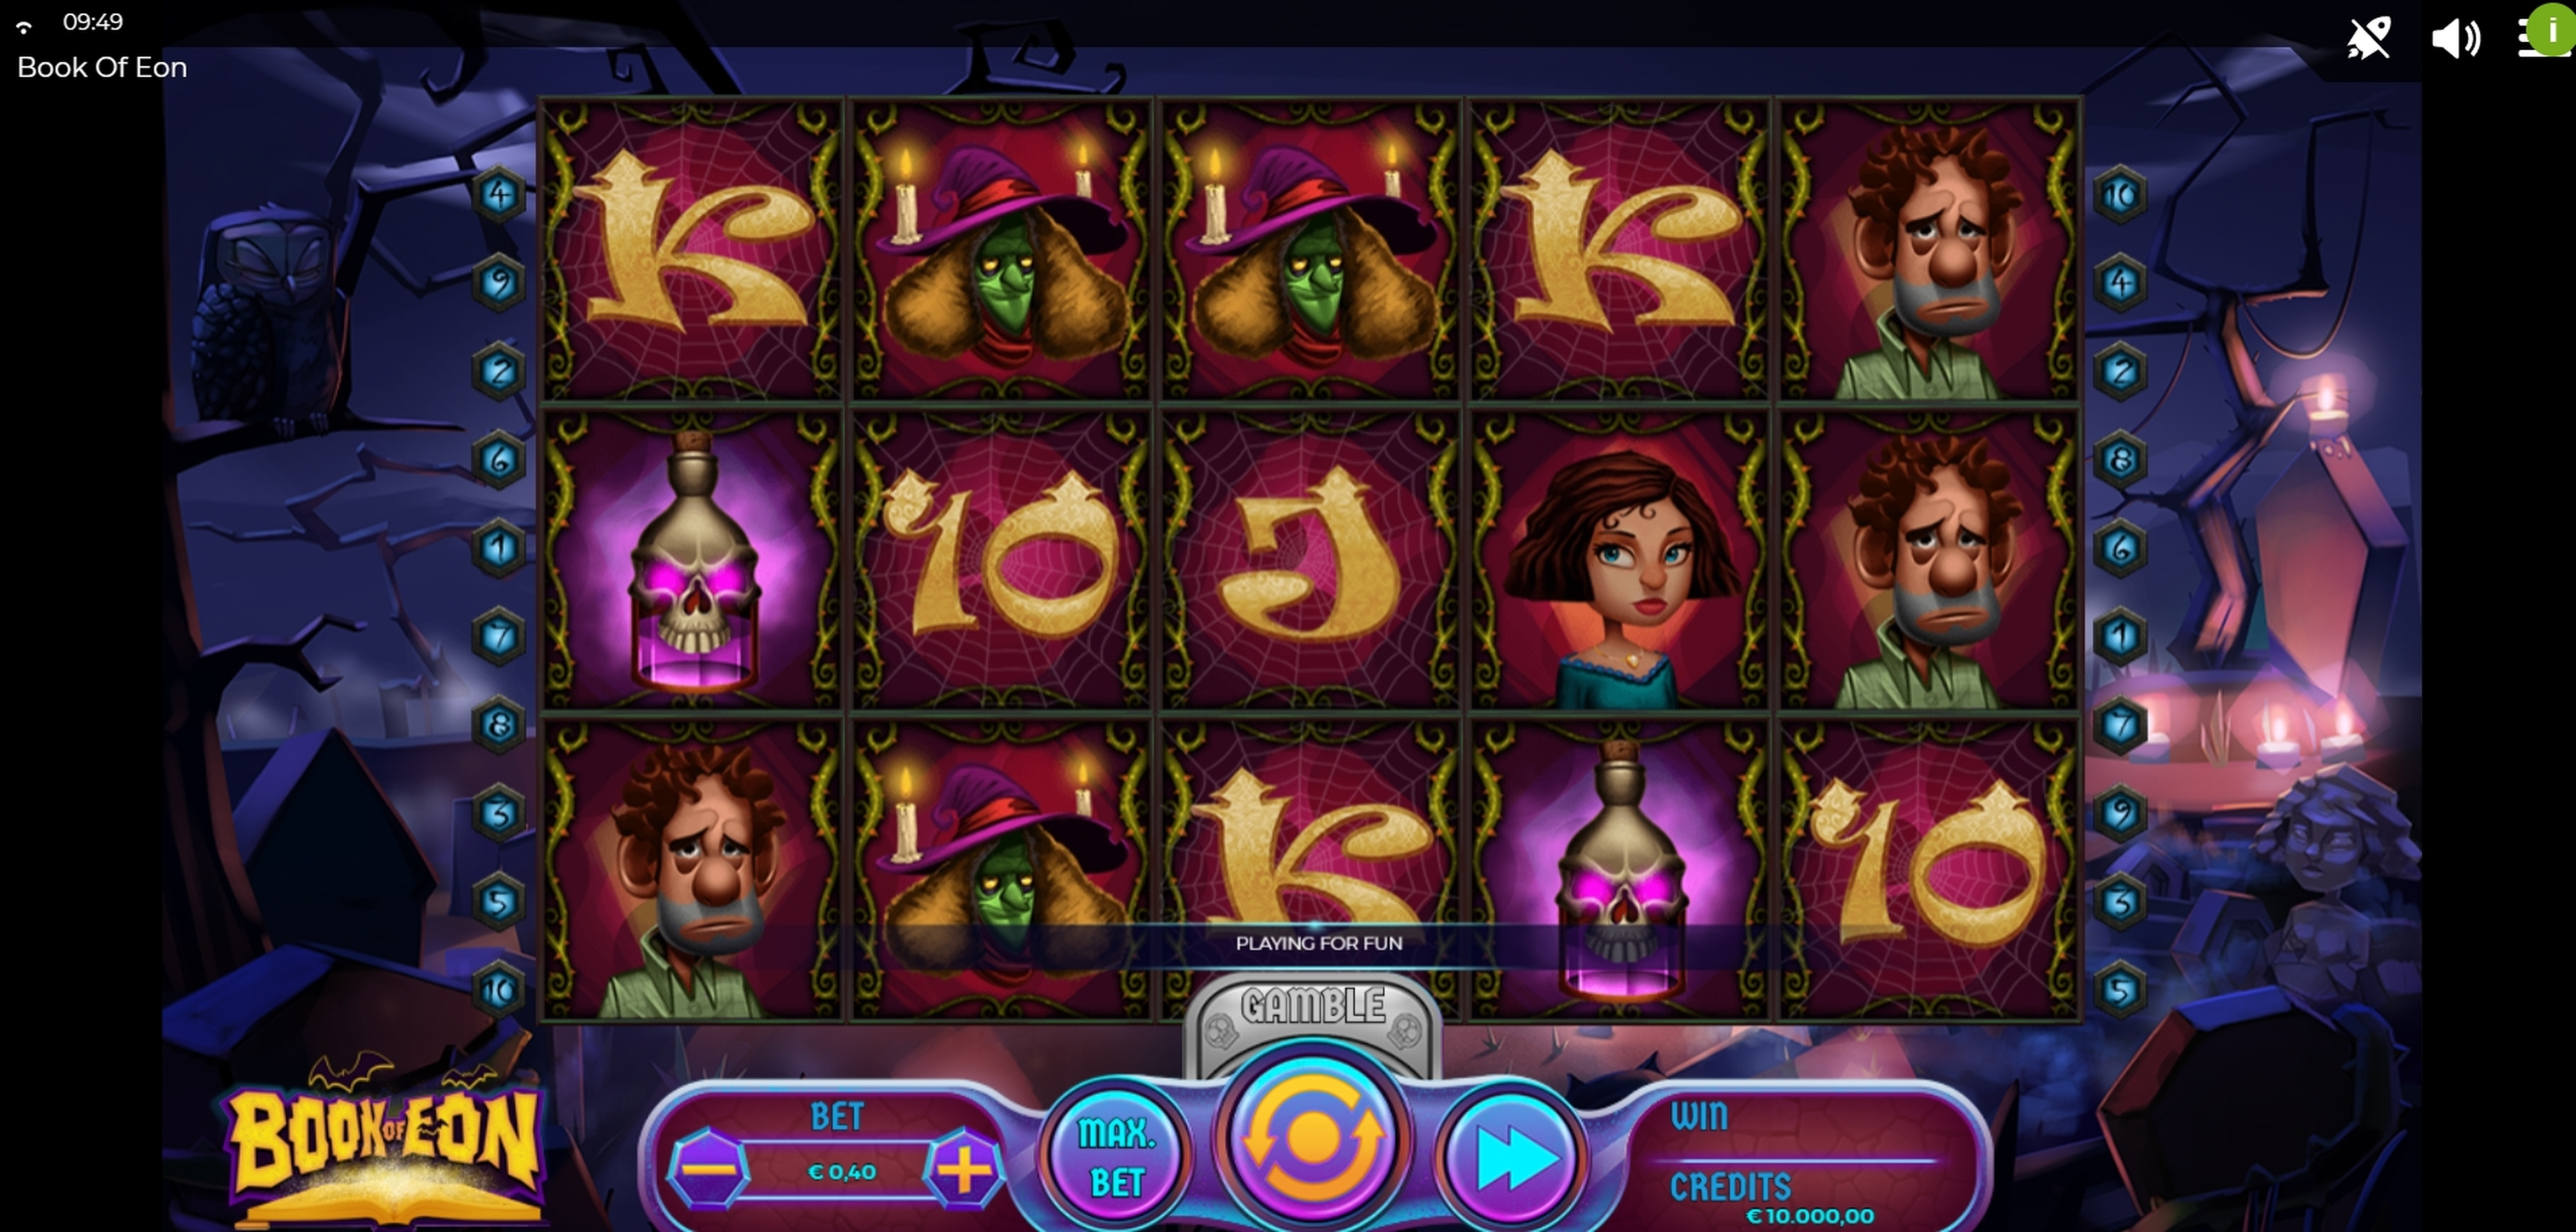 Reels in Book of Eon Slot Game by Spinmatic